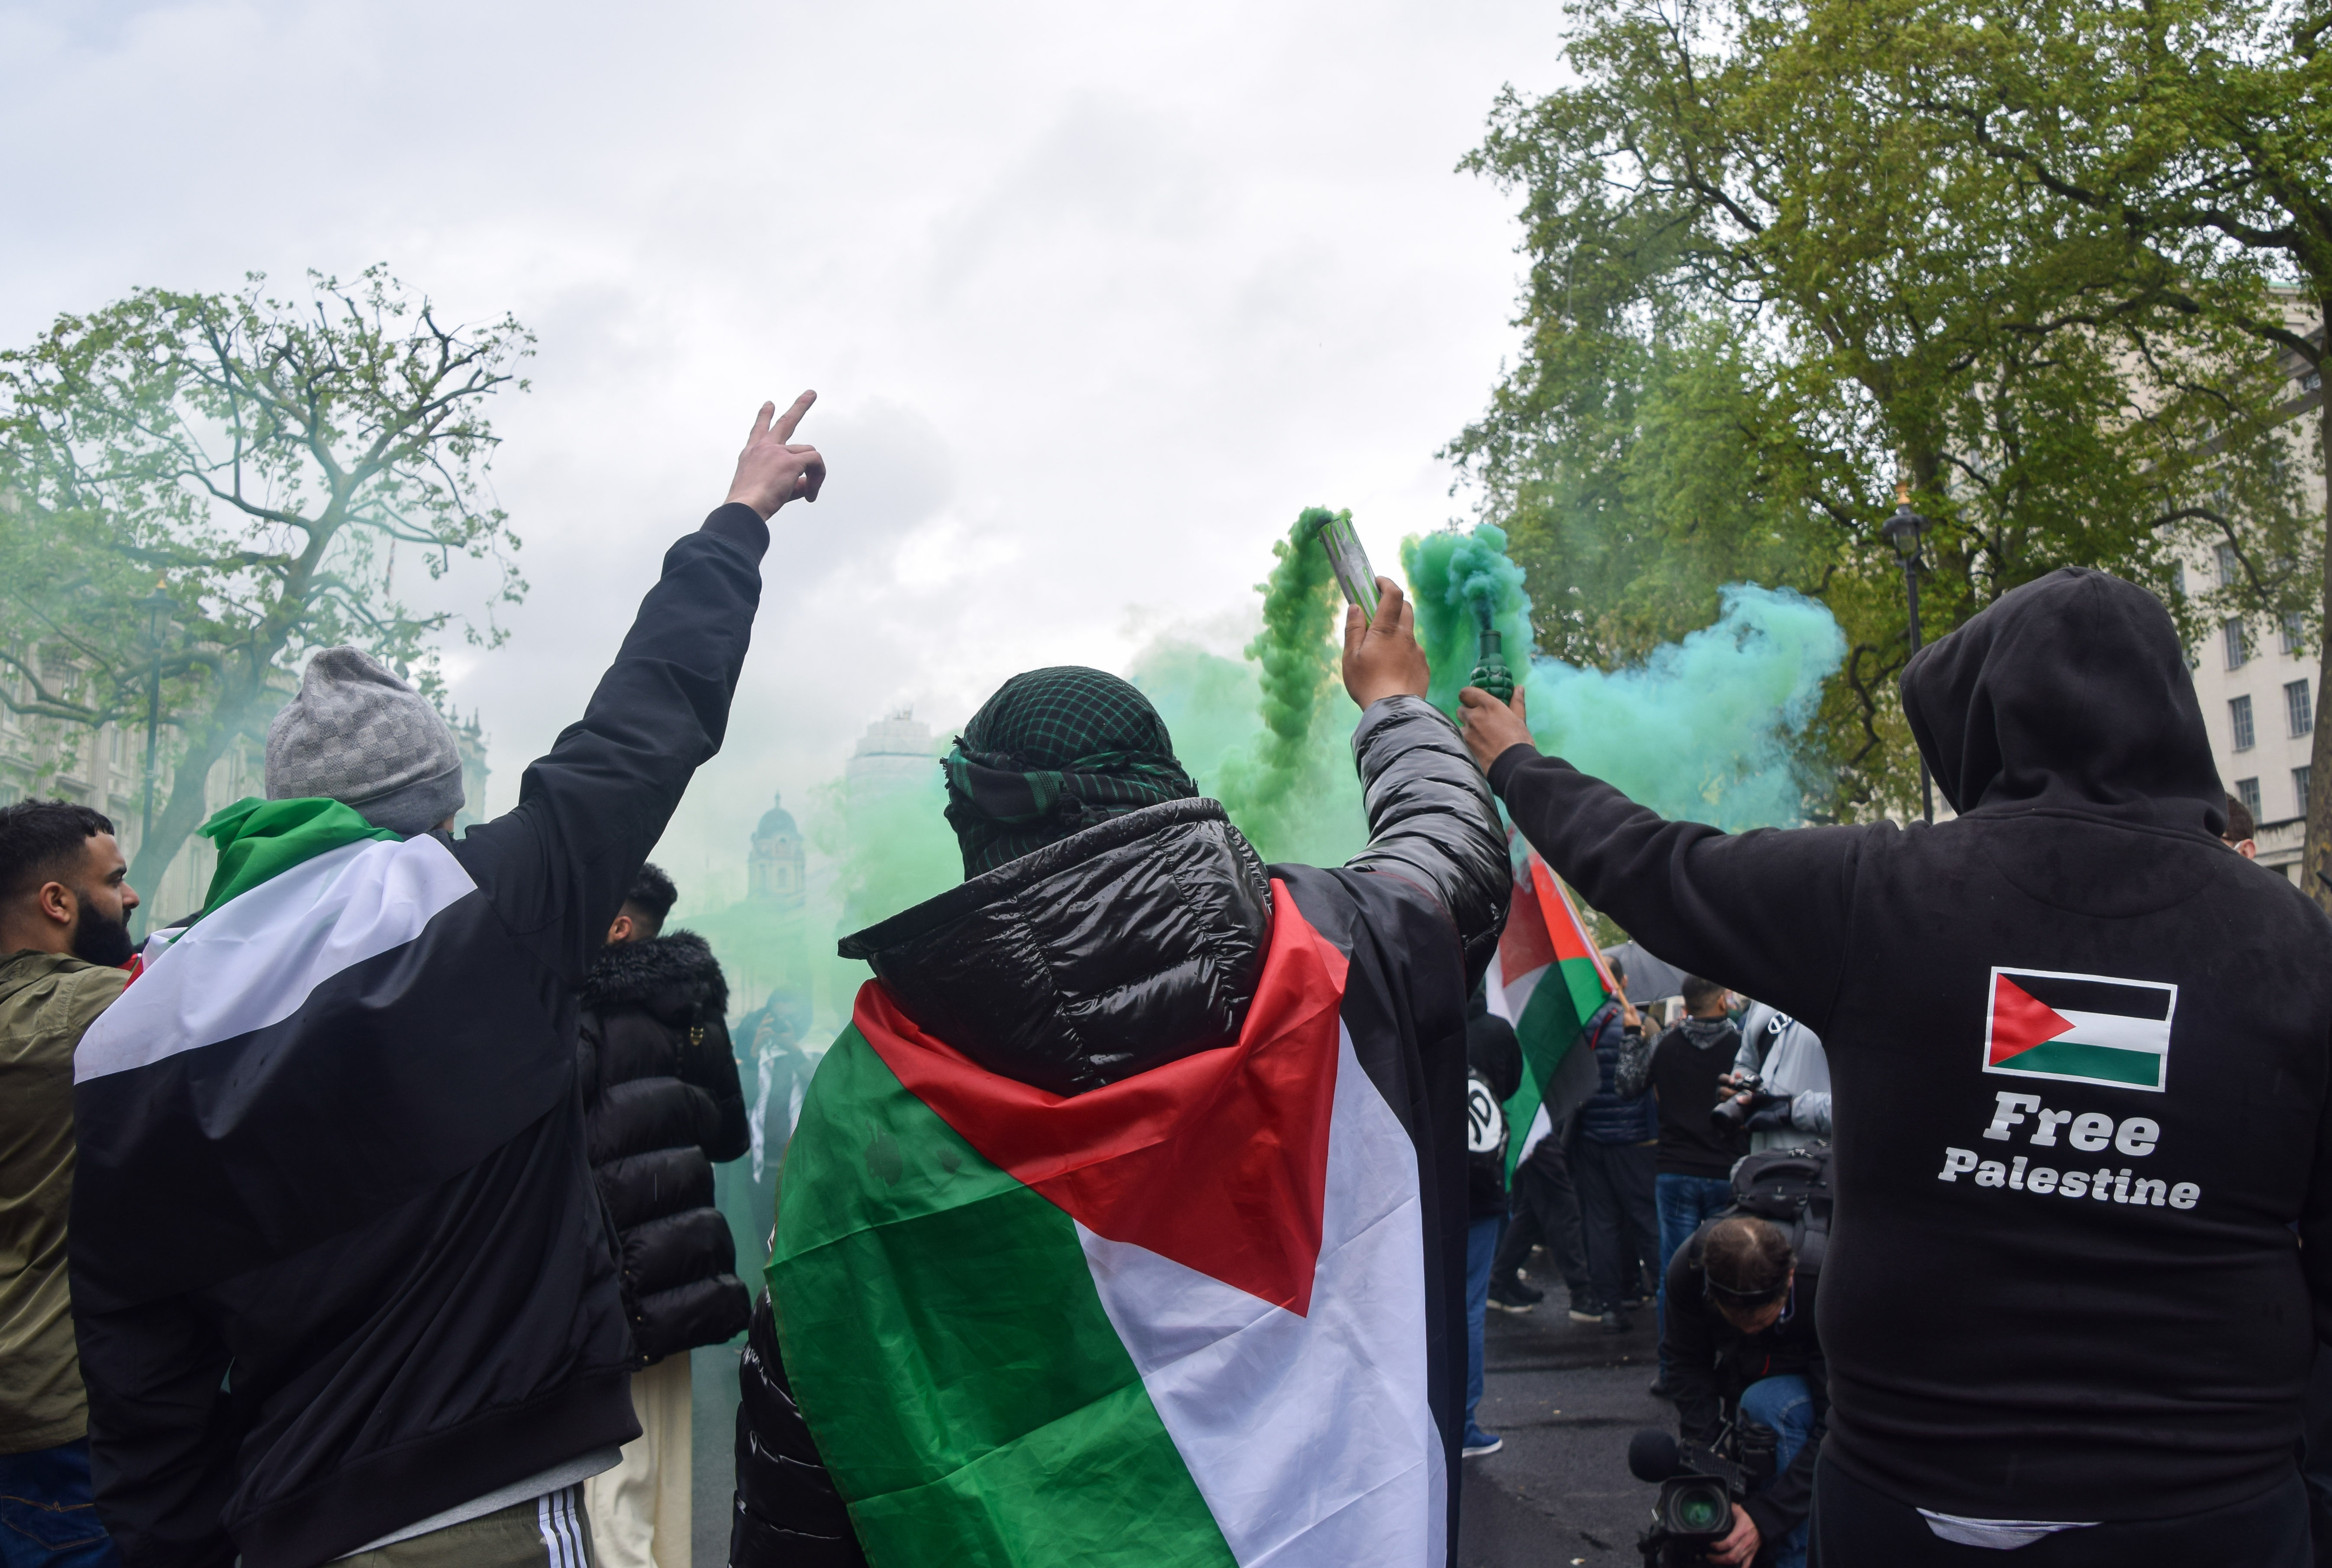 <p>LONDON, UNITED KINGDOM - 2021/05/16: Protesters hold up smoke flares outside Downing Street during the pro-Palestine demonstration. Protesters gathered in Central London for the second day of the weekend in support of Palestine as tensions between Israel and Palestine escalate. (Photo by Vuk Valcic/SOPA Images/LightRocket via Getty Images)</p>